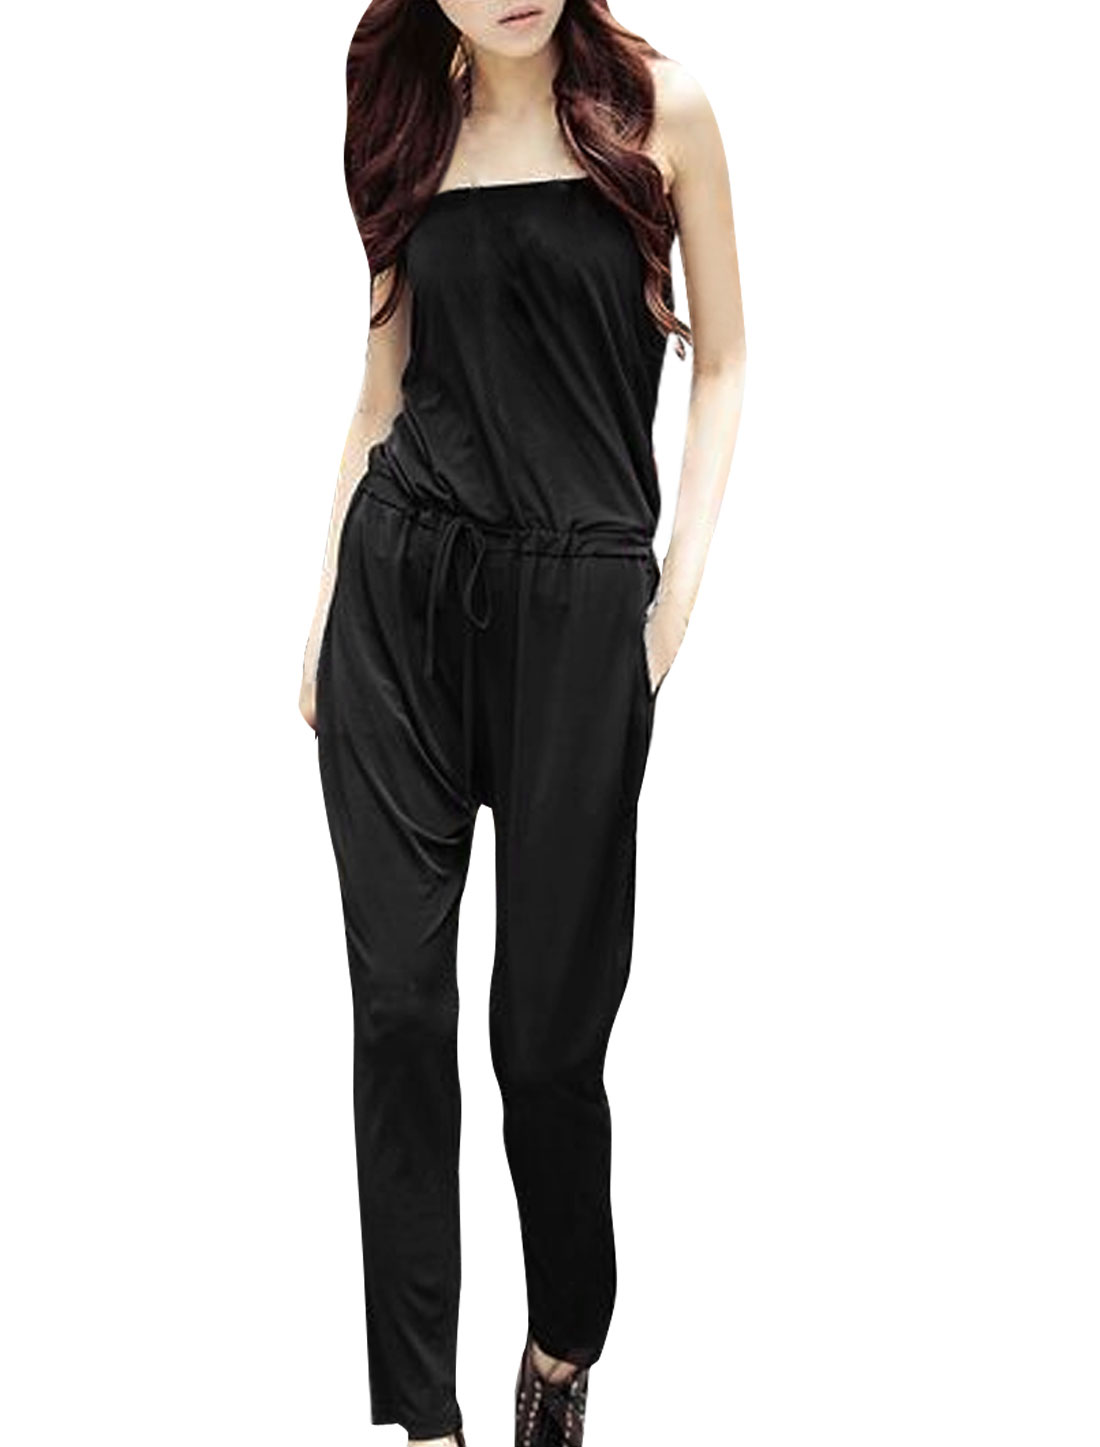 Strapless Casual Slant Pockets Summer Jumpsuit for Women Black XL